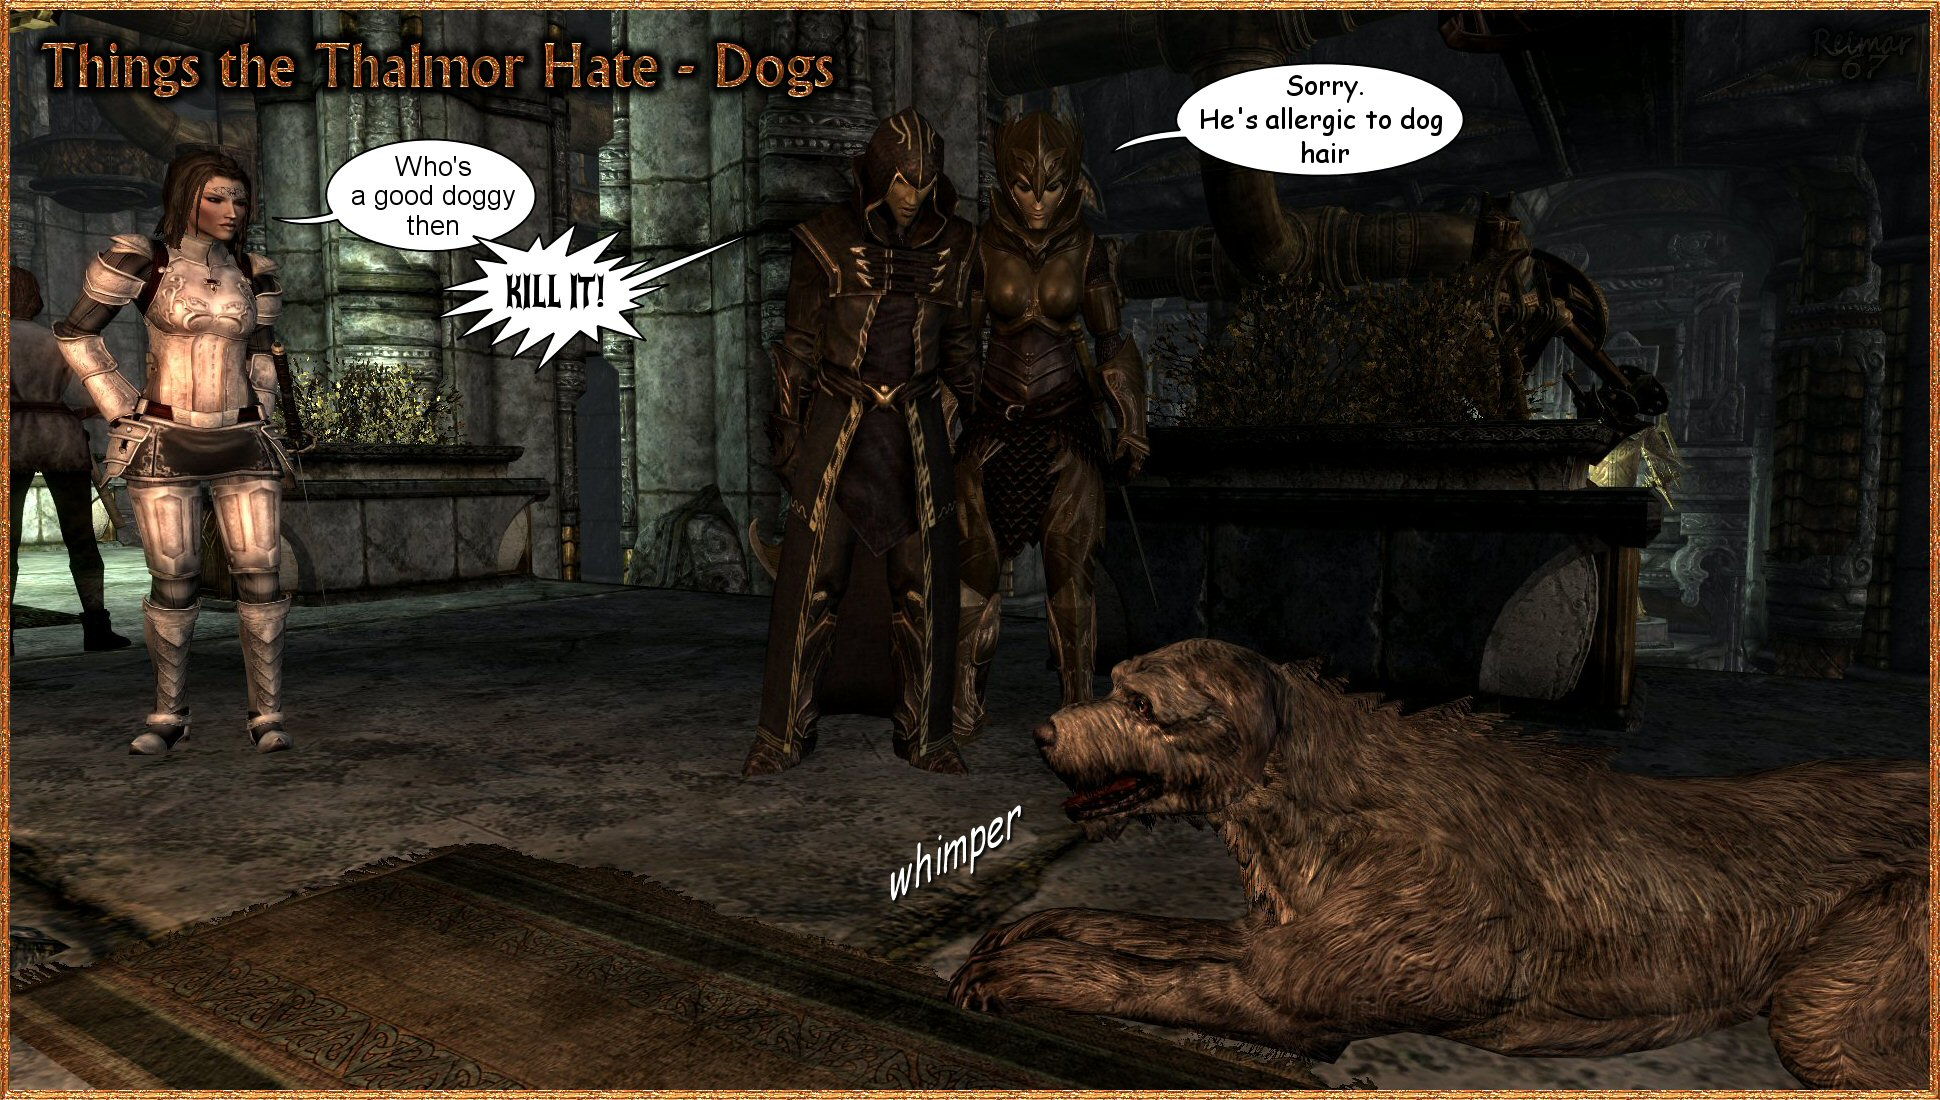 Thalmor Hate Dogs